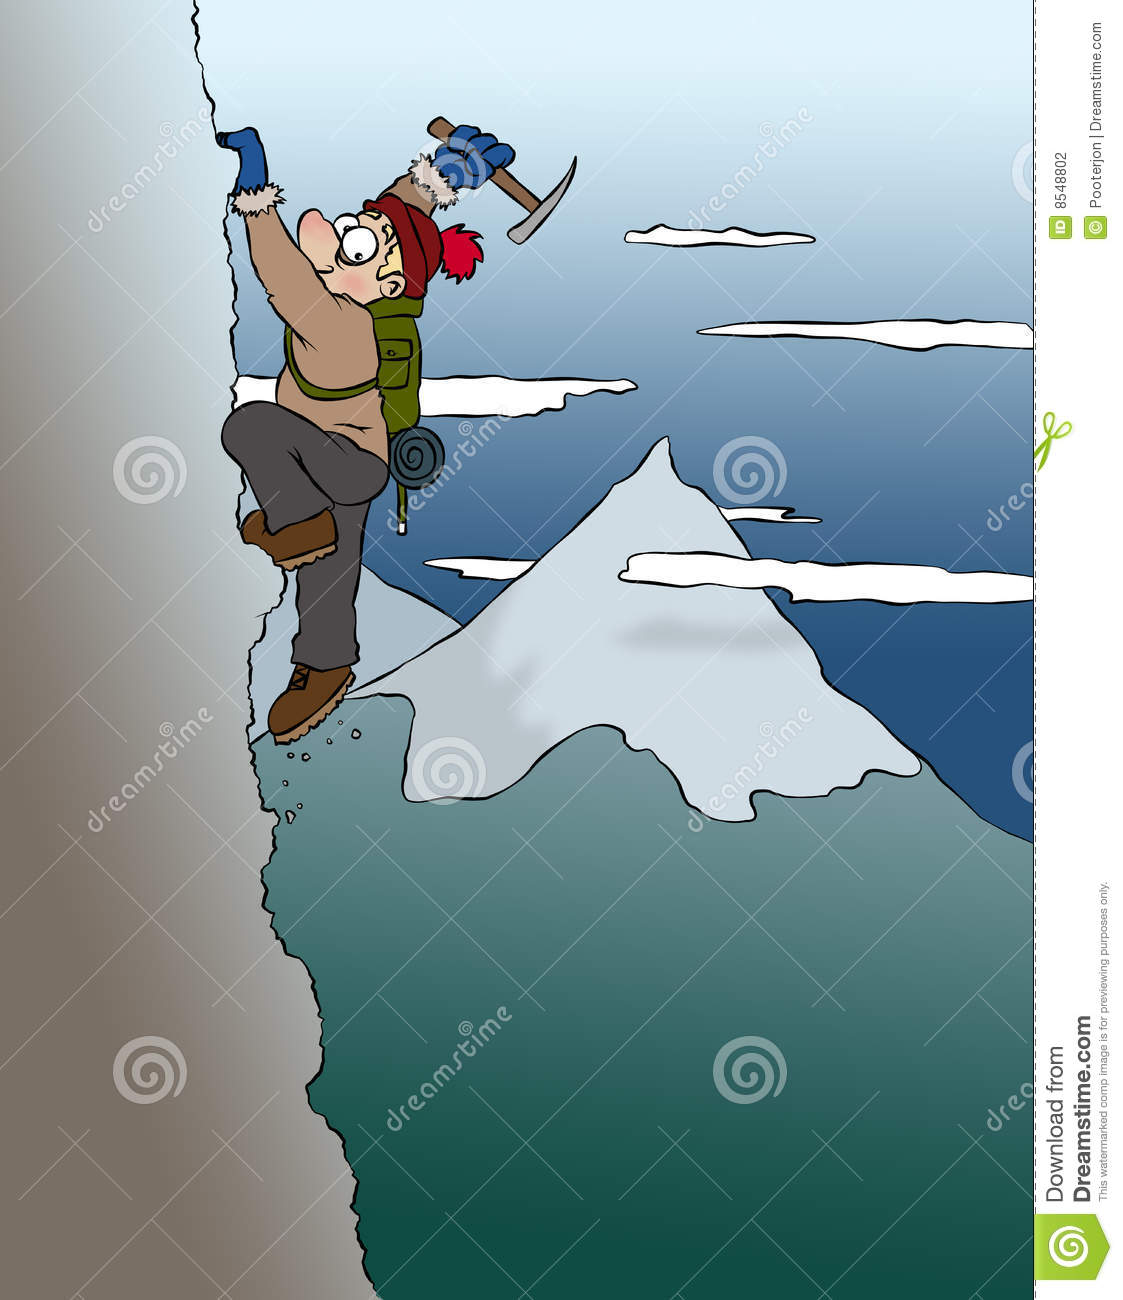 Mountain Climber Stock Photography - Image: 8548802